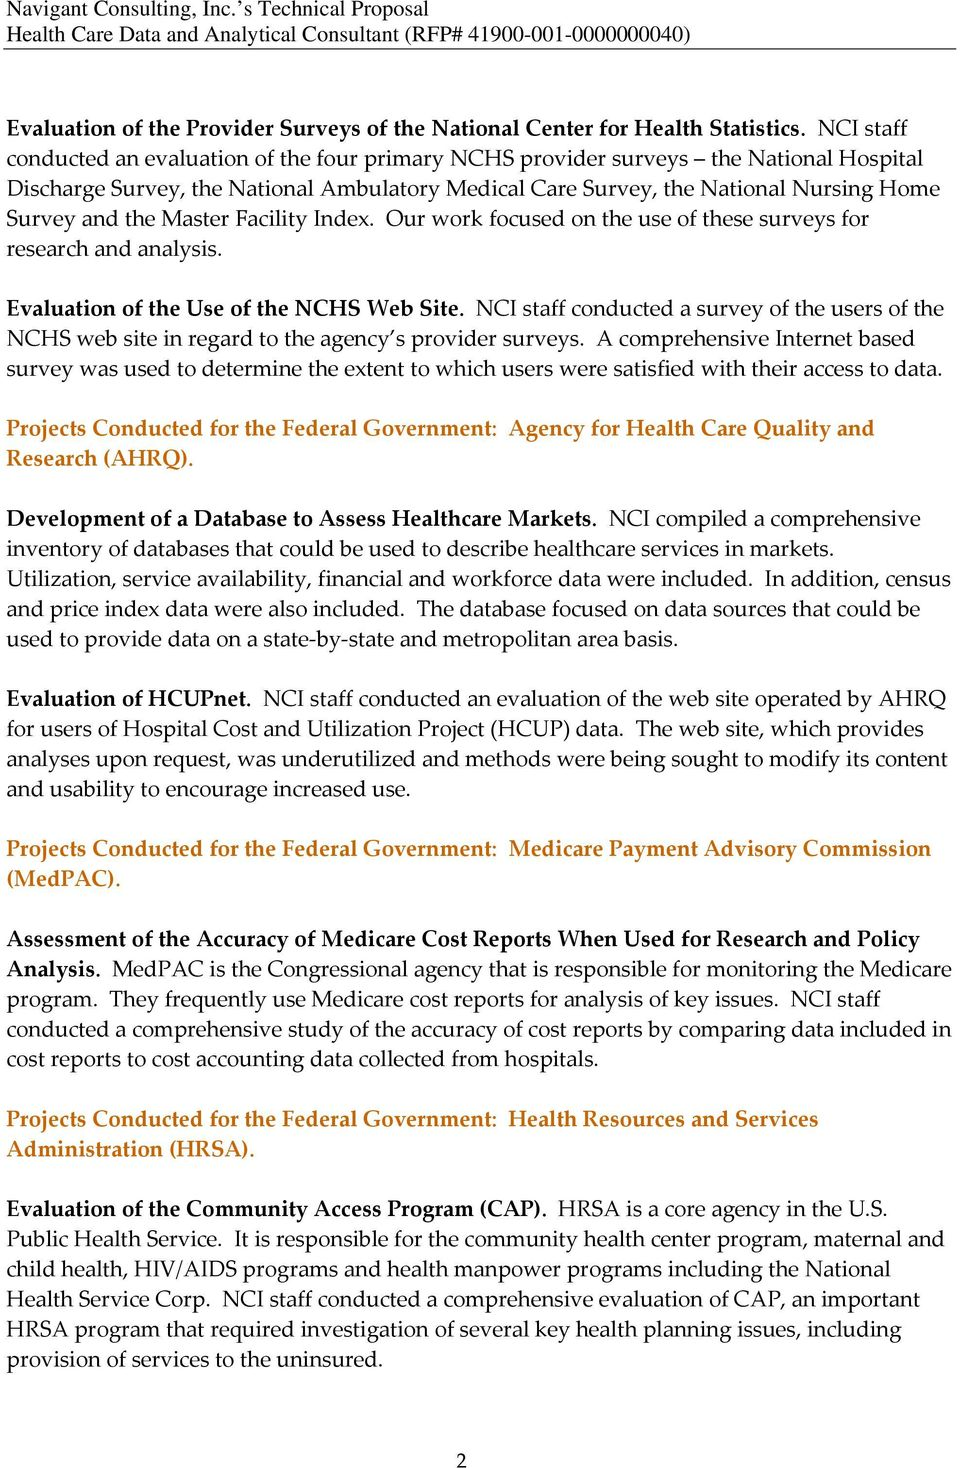 Navigant Consulting, Inc  s Technical Proposal Health Care